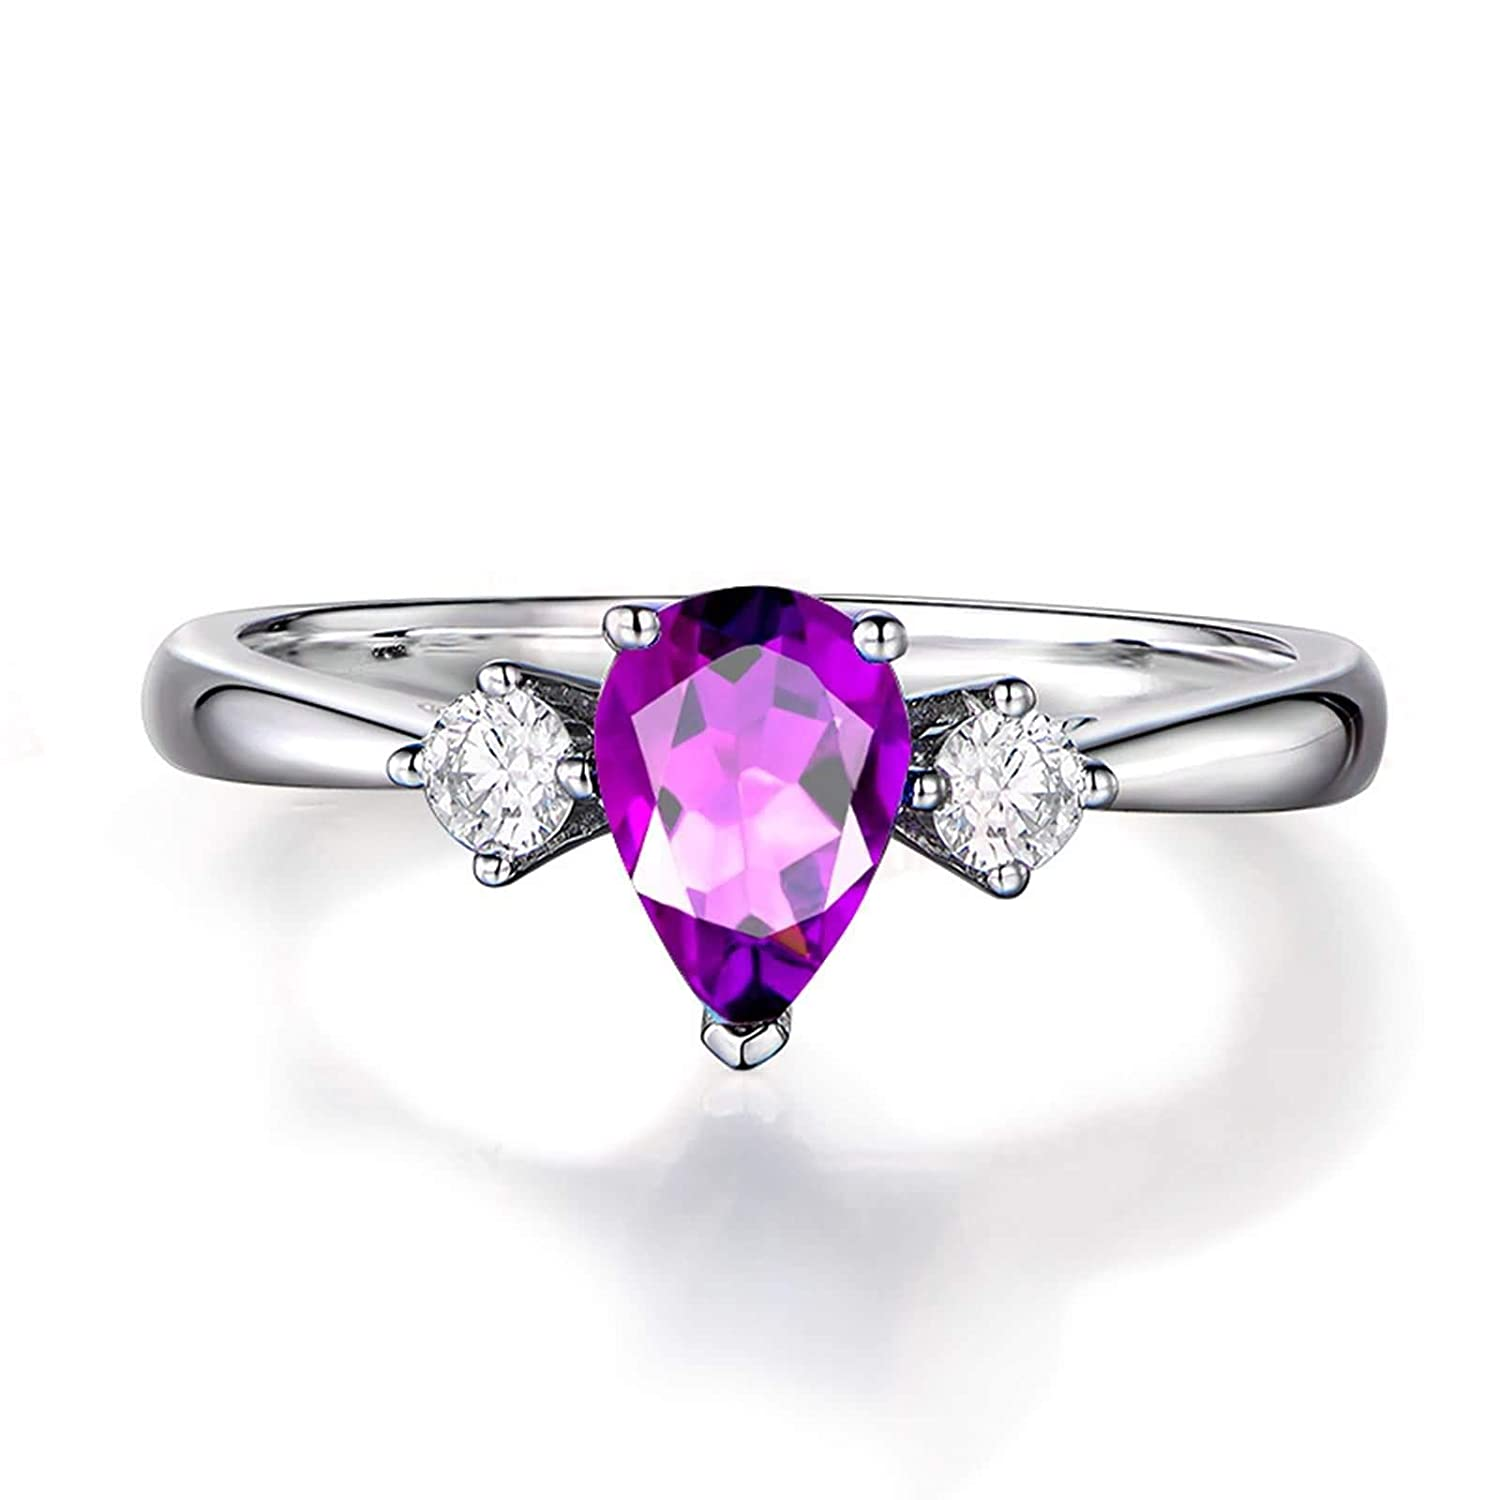 MoAndy Sterling Silver Rings for Women Purple Pear Shape Amethyst Anniversary Wedding Band Engagement Ring Size 4-11